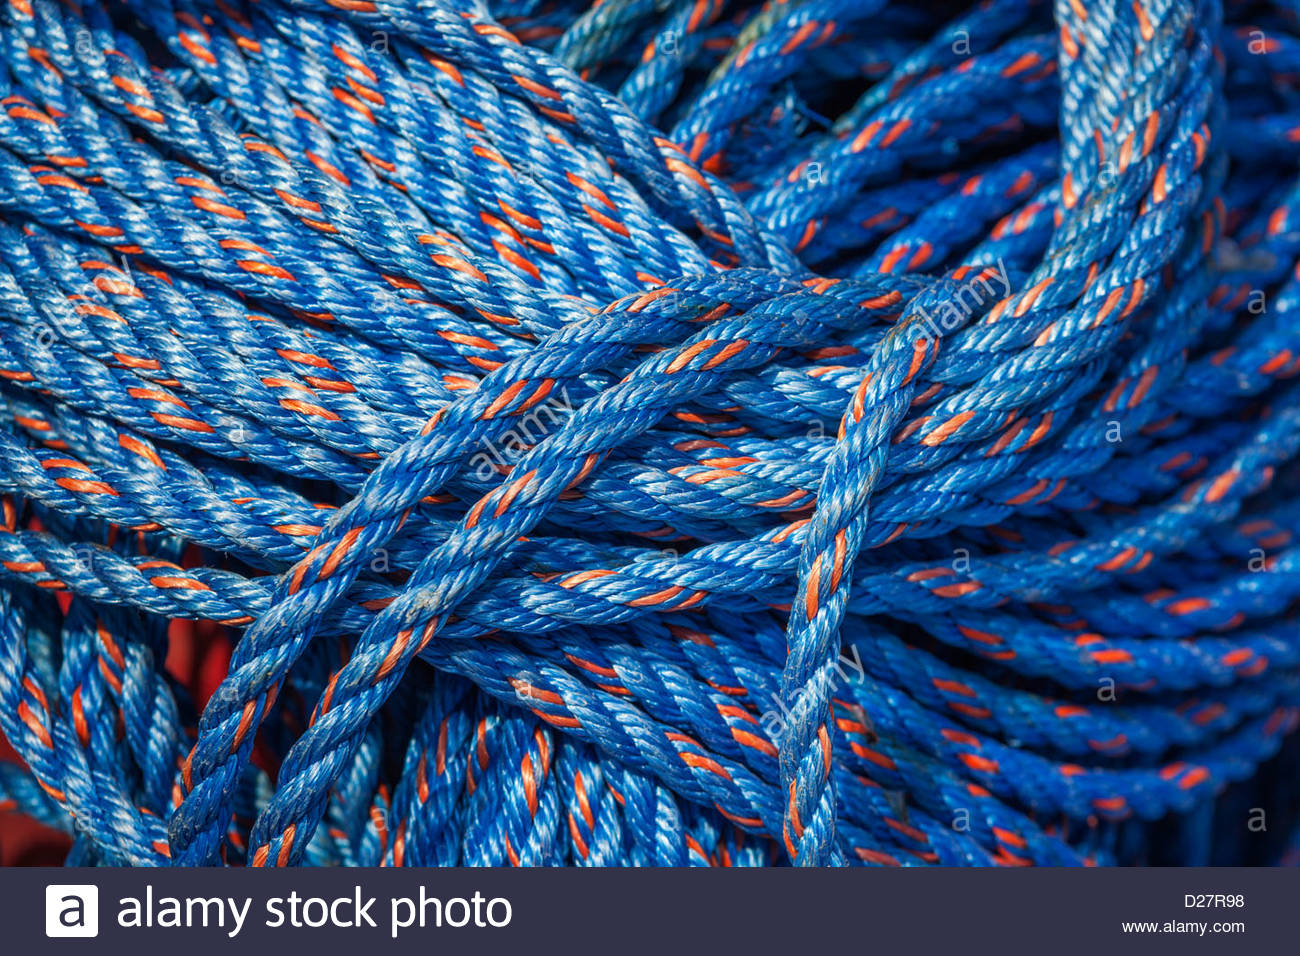 USA, Oregon, Charleston Marina, Detail of boat rope - Stock Image